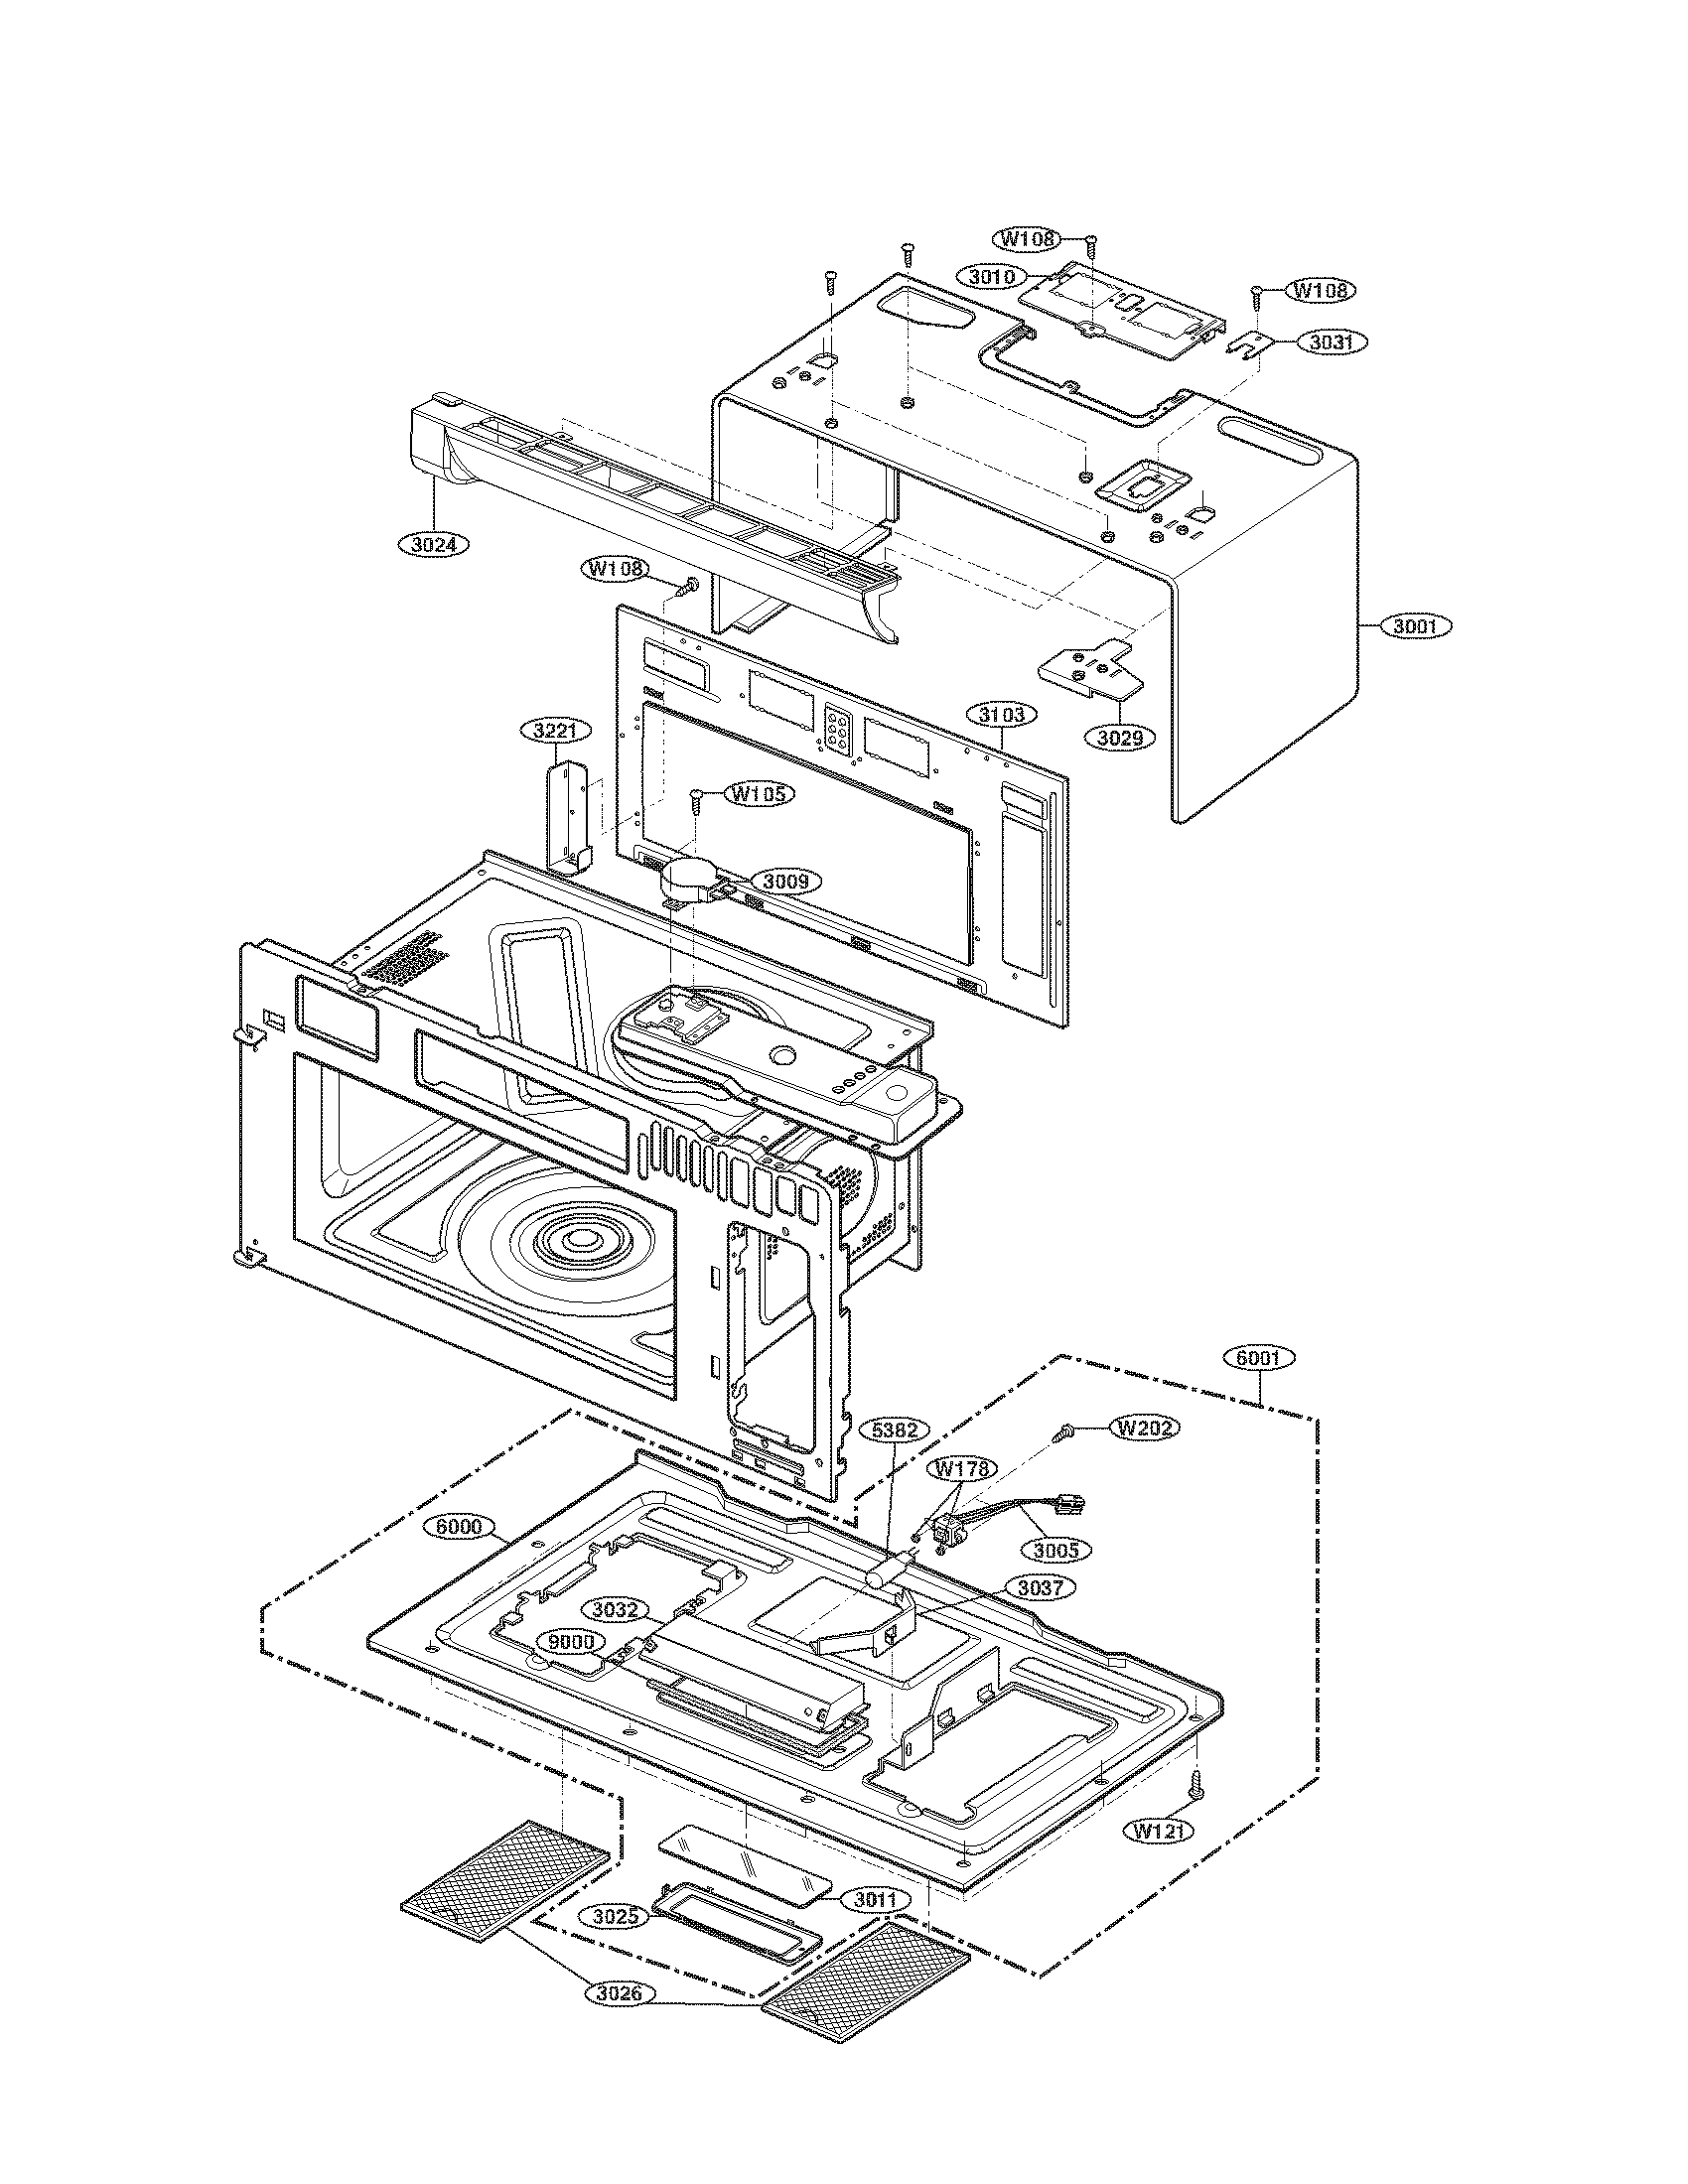 CAVITY PARTS Diagram & Parts List for Model 72188512900